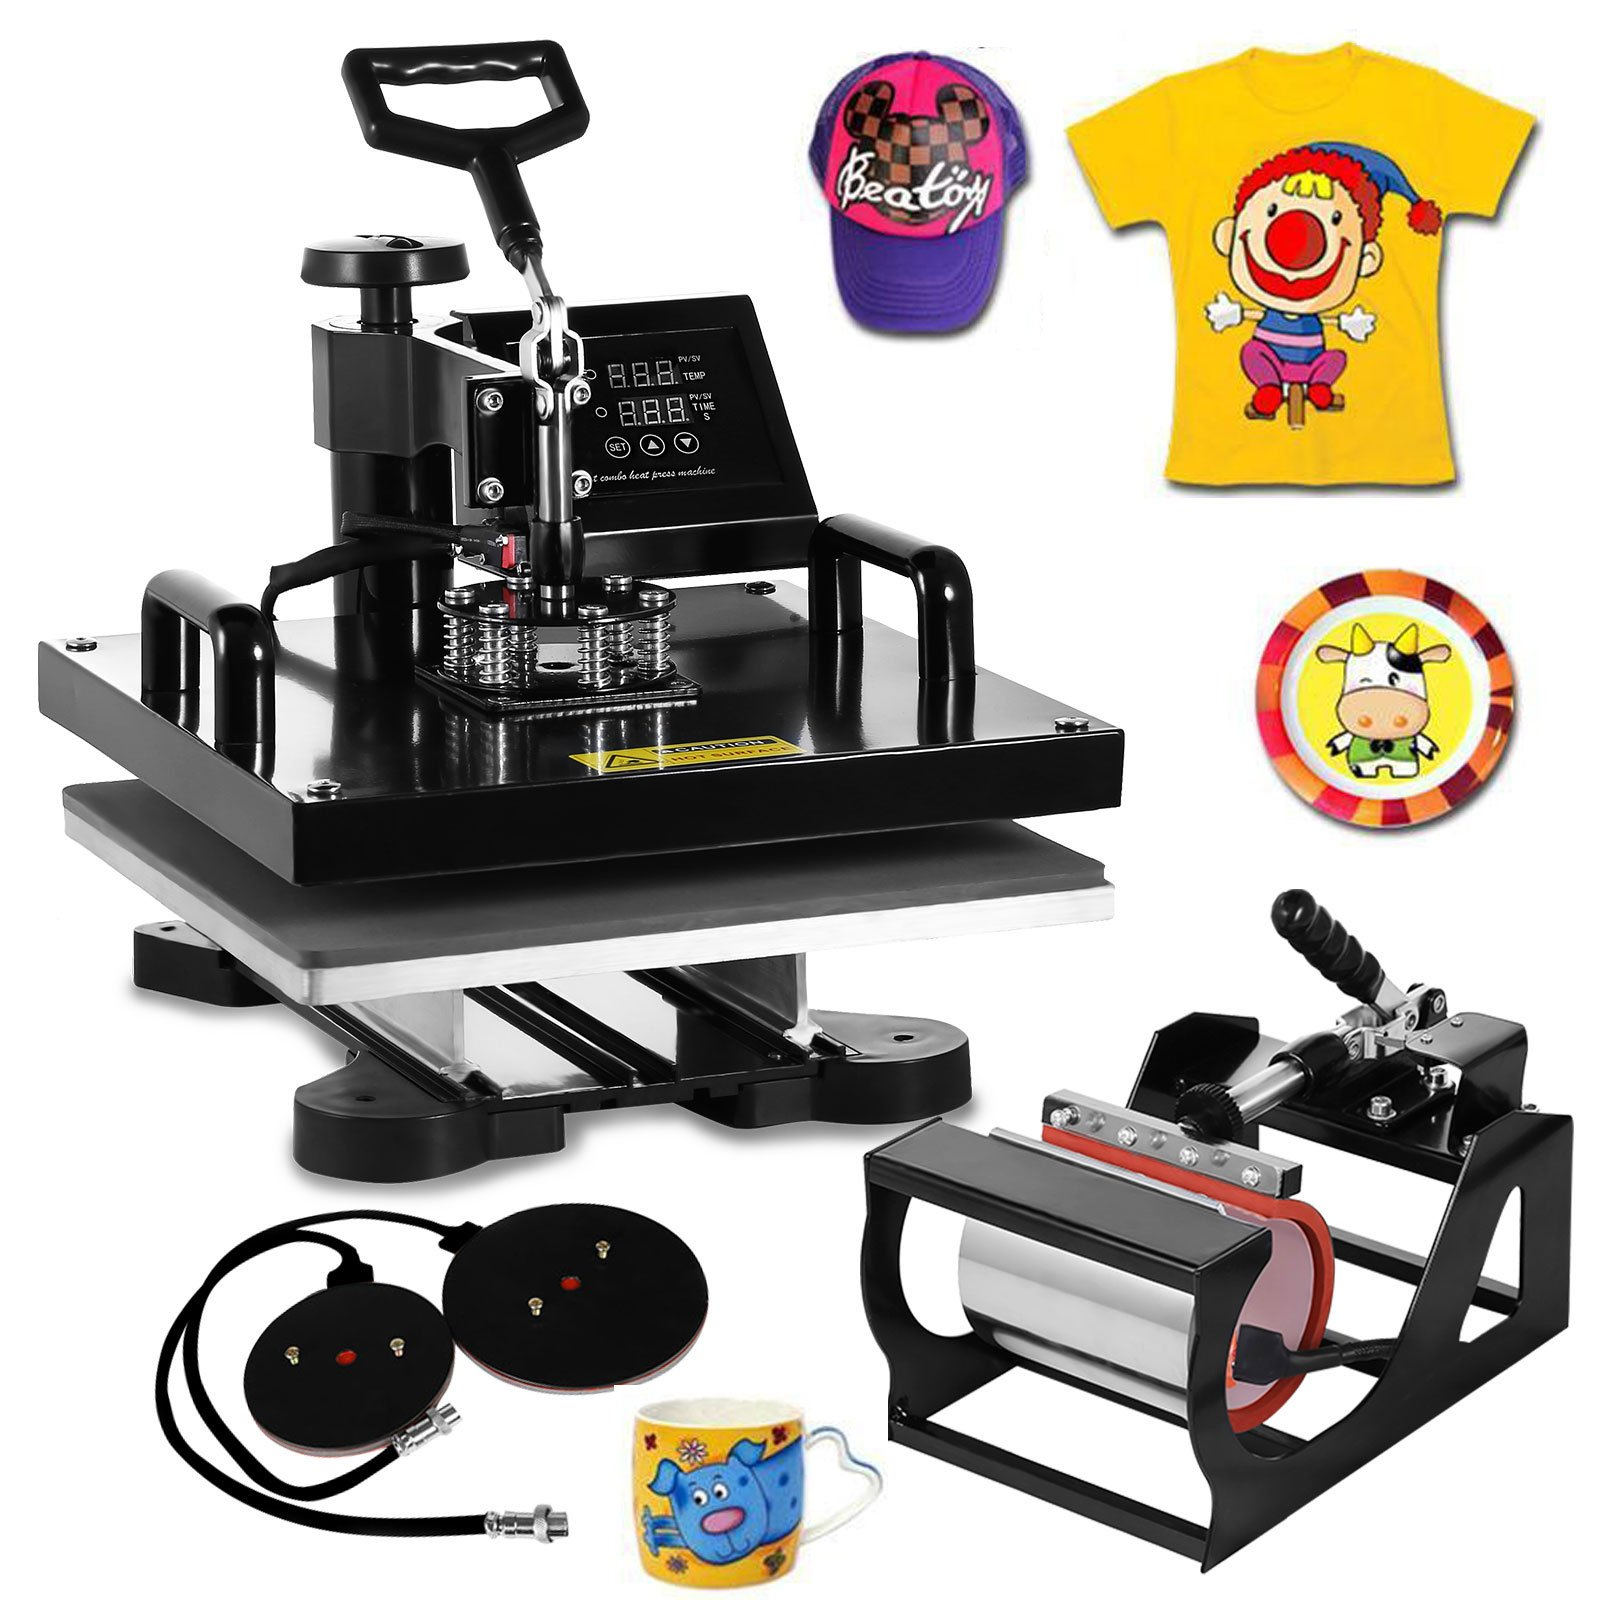 DeEtt 15''x15'' 5IN1 Combo T-Shirt Heat Press 360 Degree Rotation Swing Away Heat Press Machine Slide Rail Design Mug Hat Pressing (15''x15'' 5IN1) by DeEtt